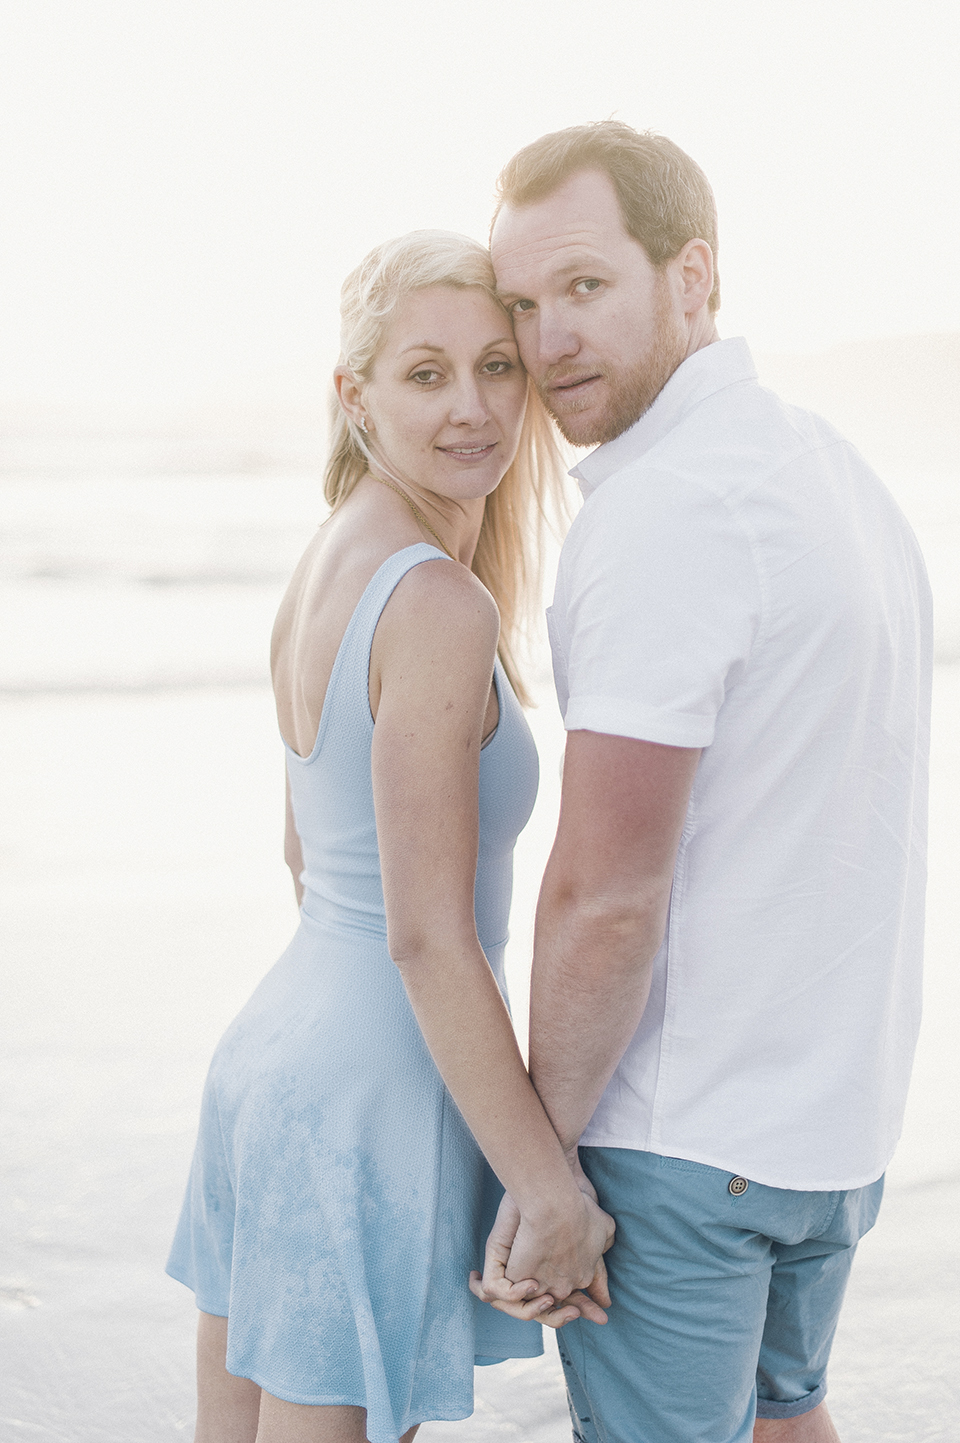 RyanParker_WeddingPhotographer_FineArt_CapeTown_EngagementSession_Hermanus_M&S_DSC_2501DSC_2626.jpg